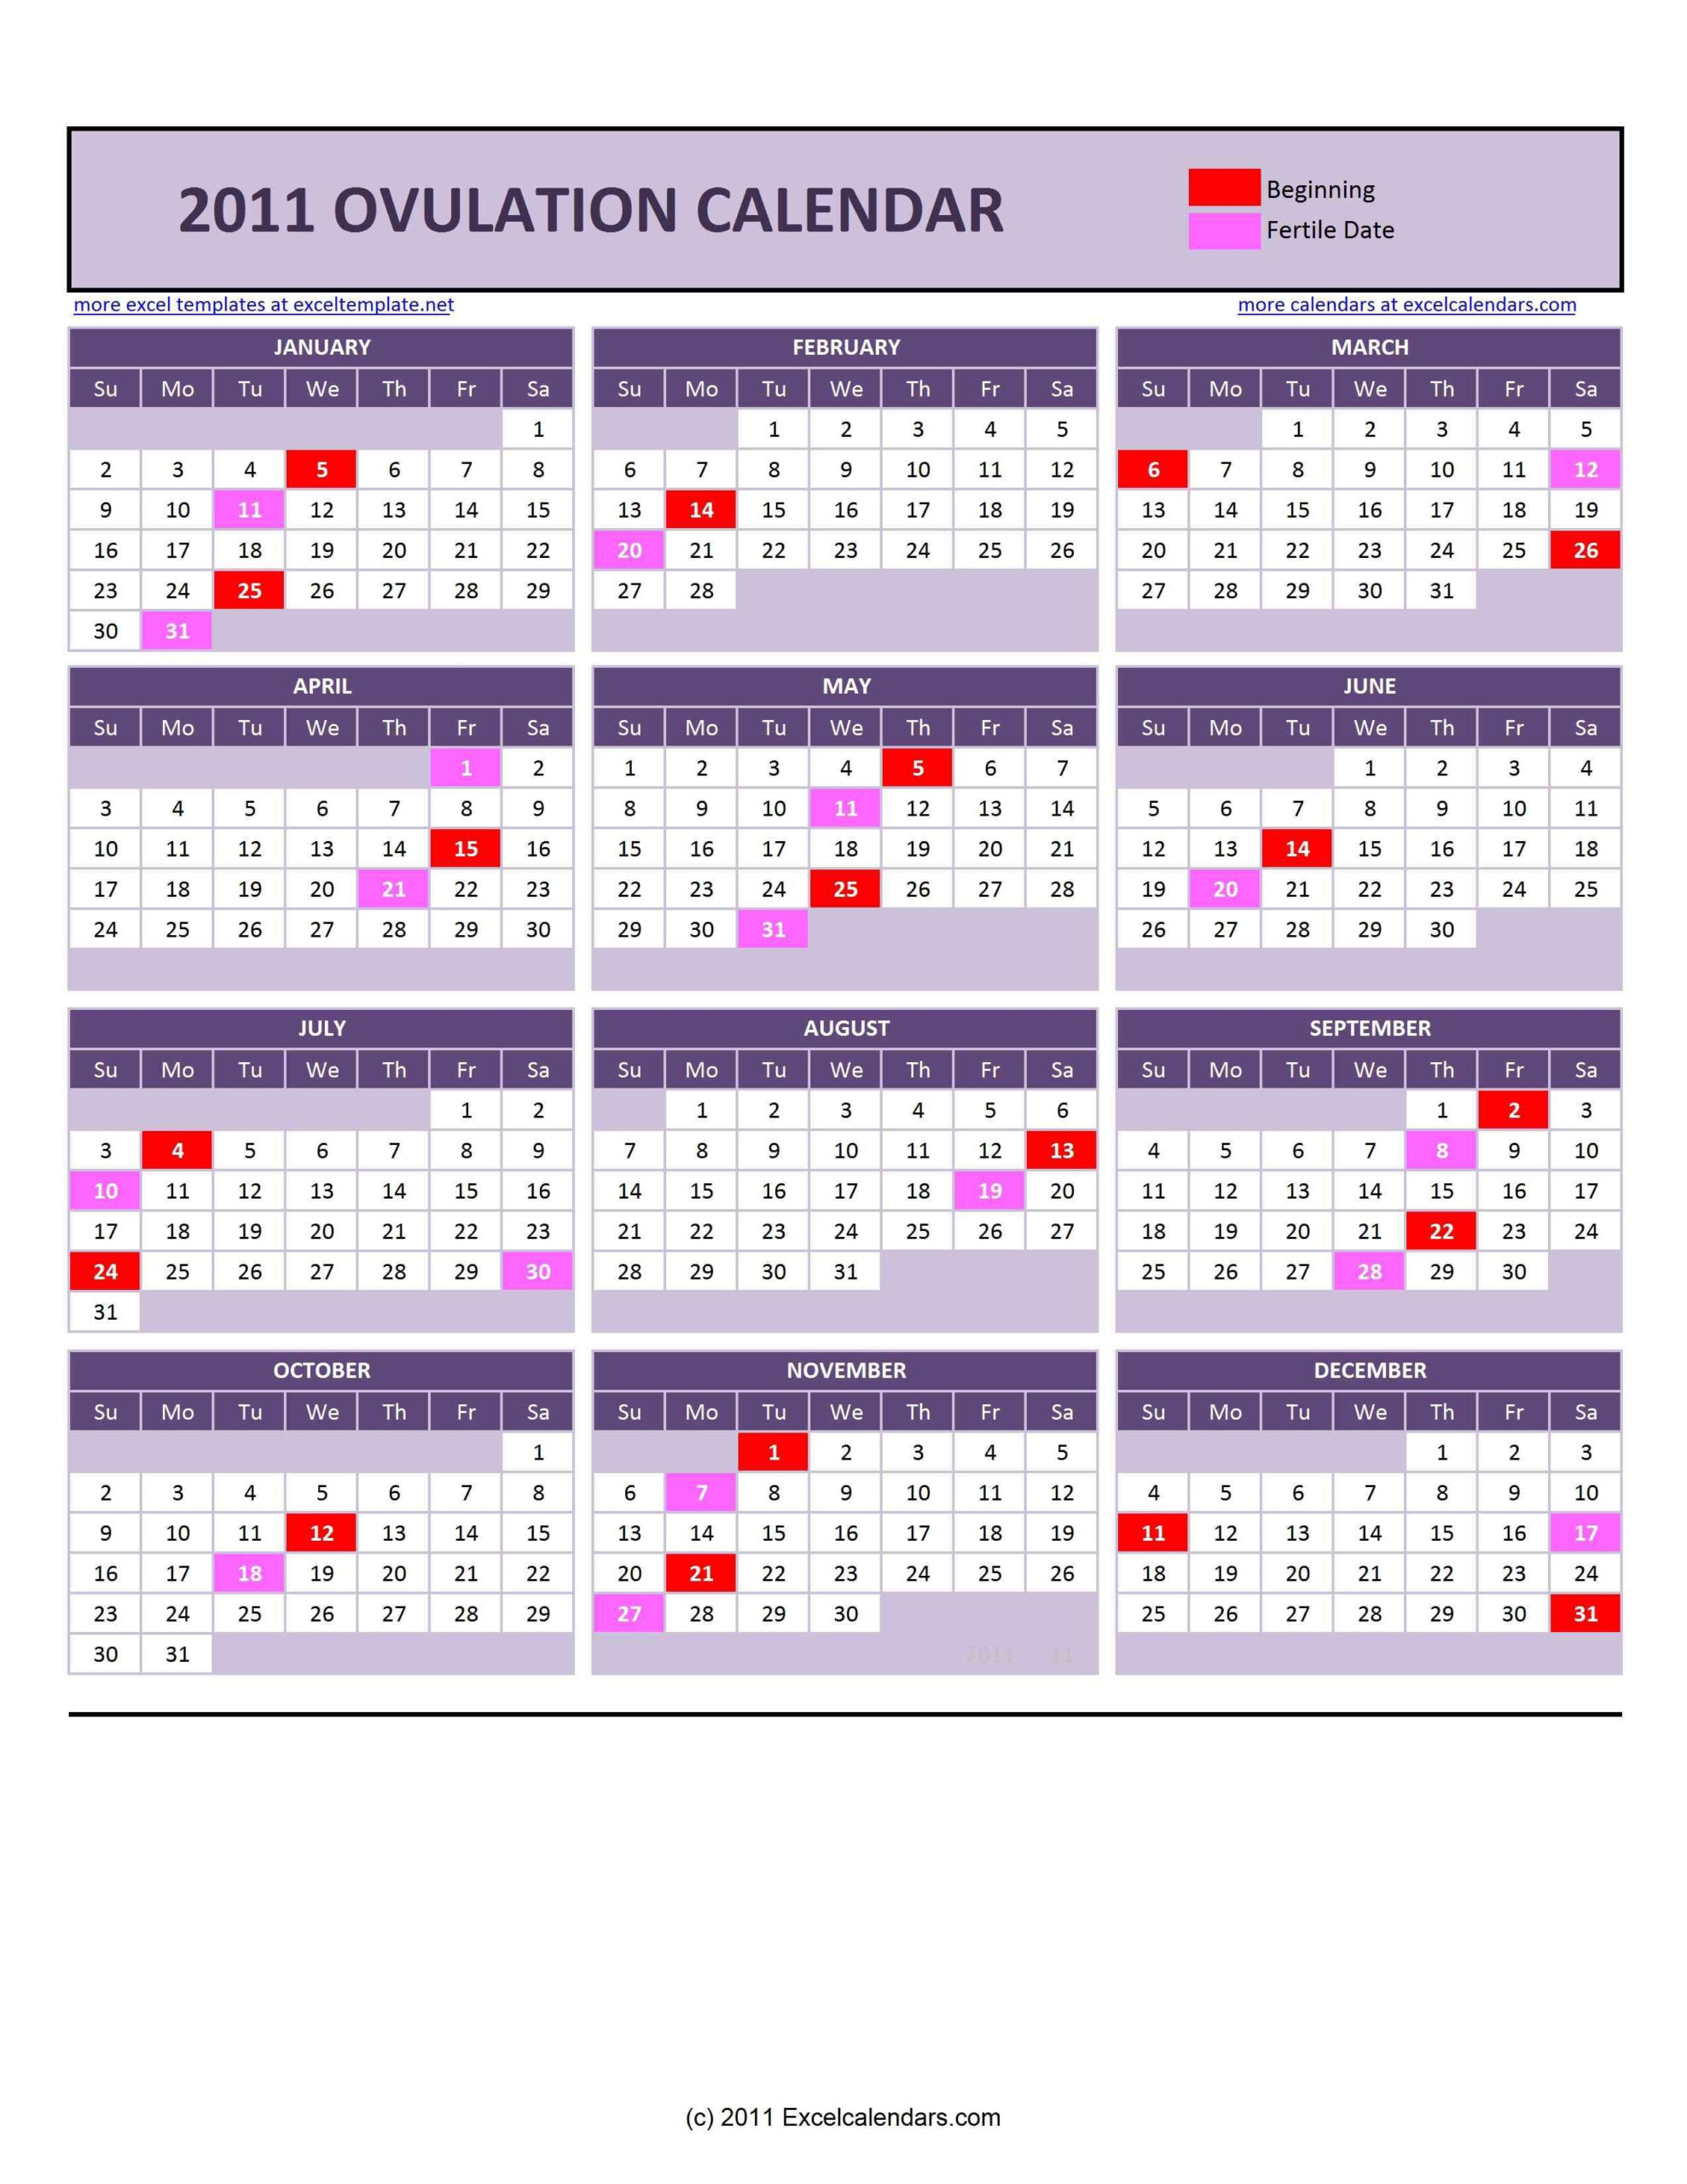 Quadax Julian Date Calendar 2020 | Calendar For Planning with 2021 Calendar Hong Kong Excel Format